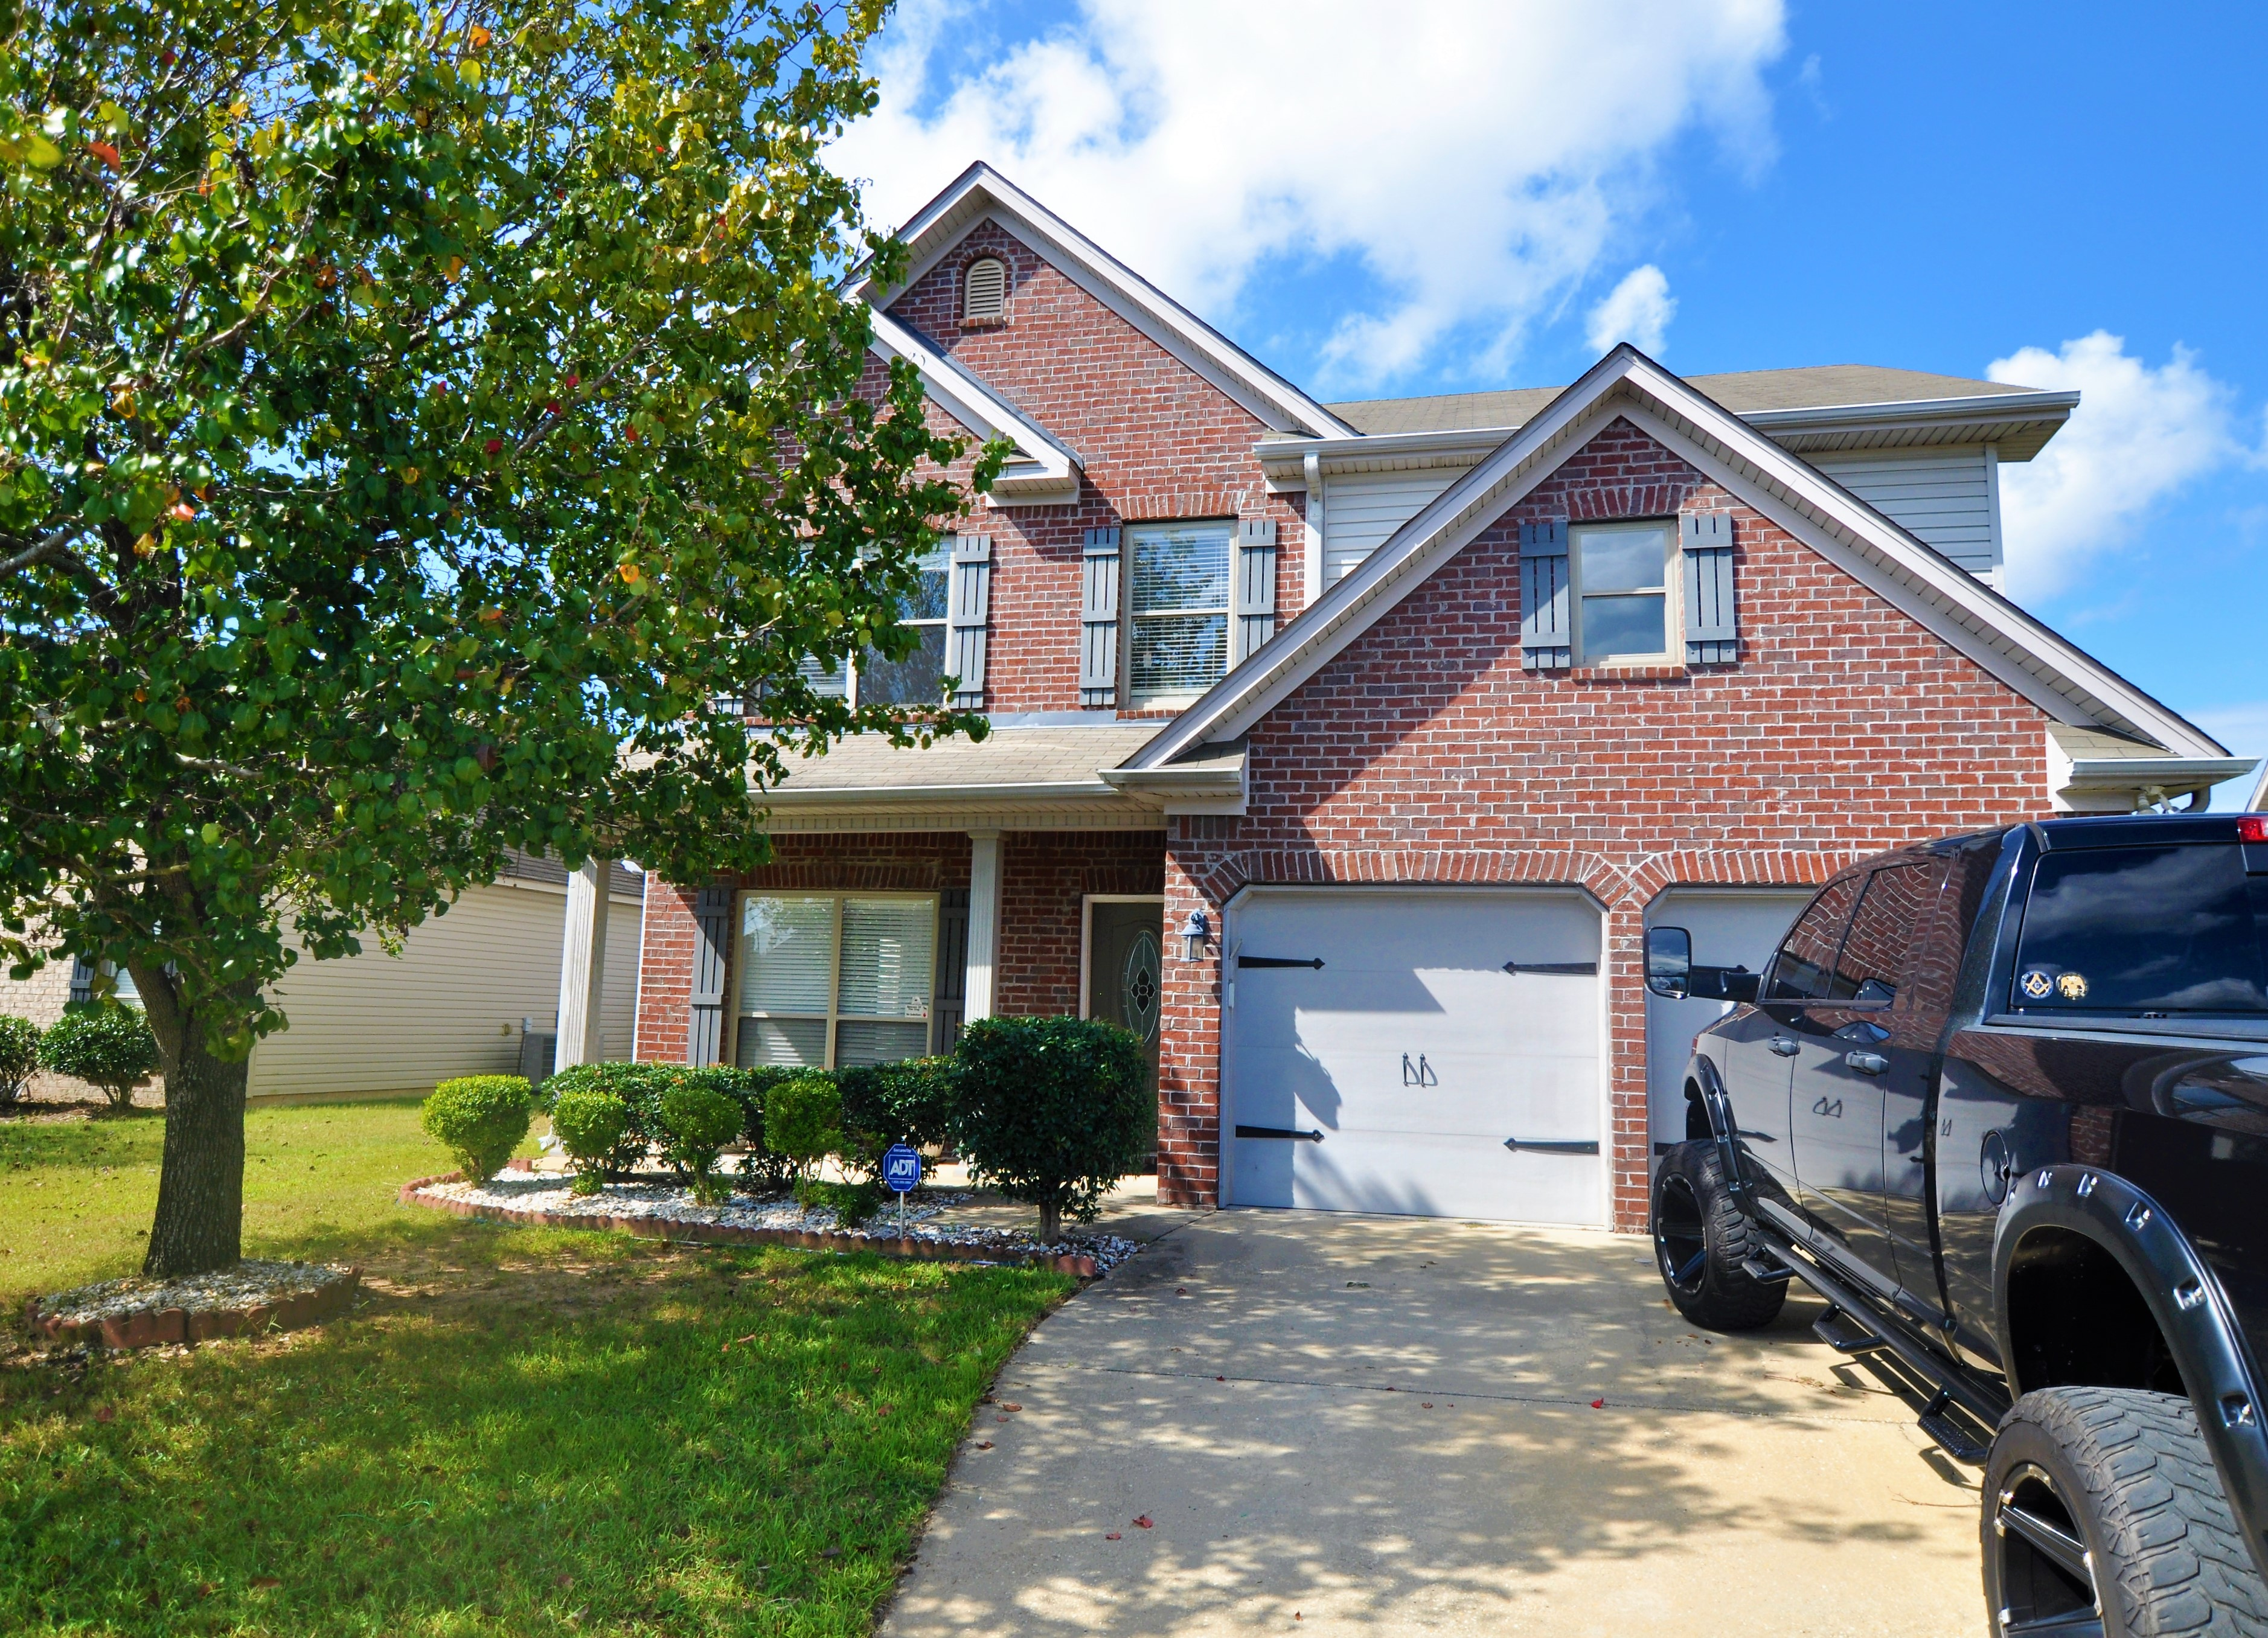 FOR SALE IN MONTGOMERY! 3 BED 2 BATH AT 6816 OVERVIEW DRIVE